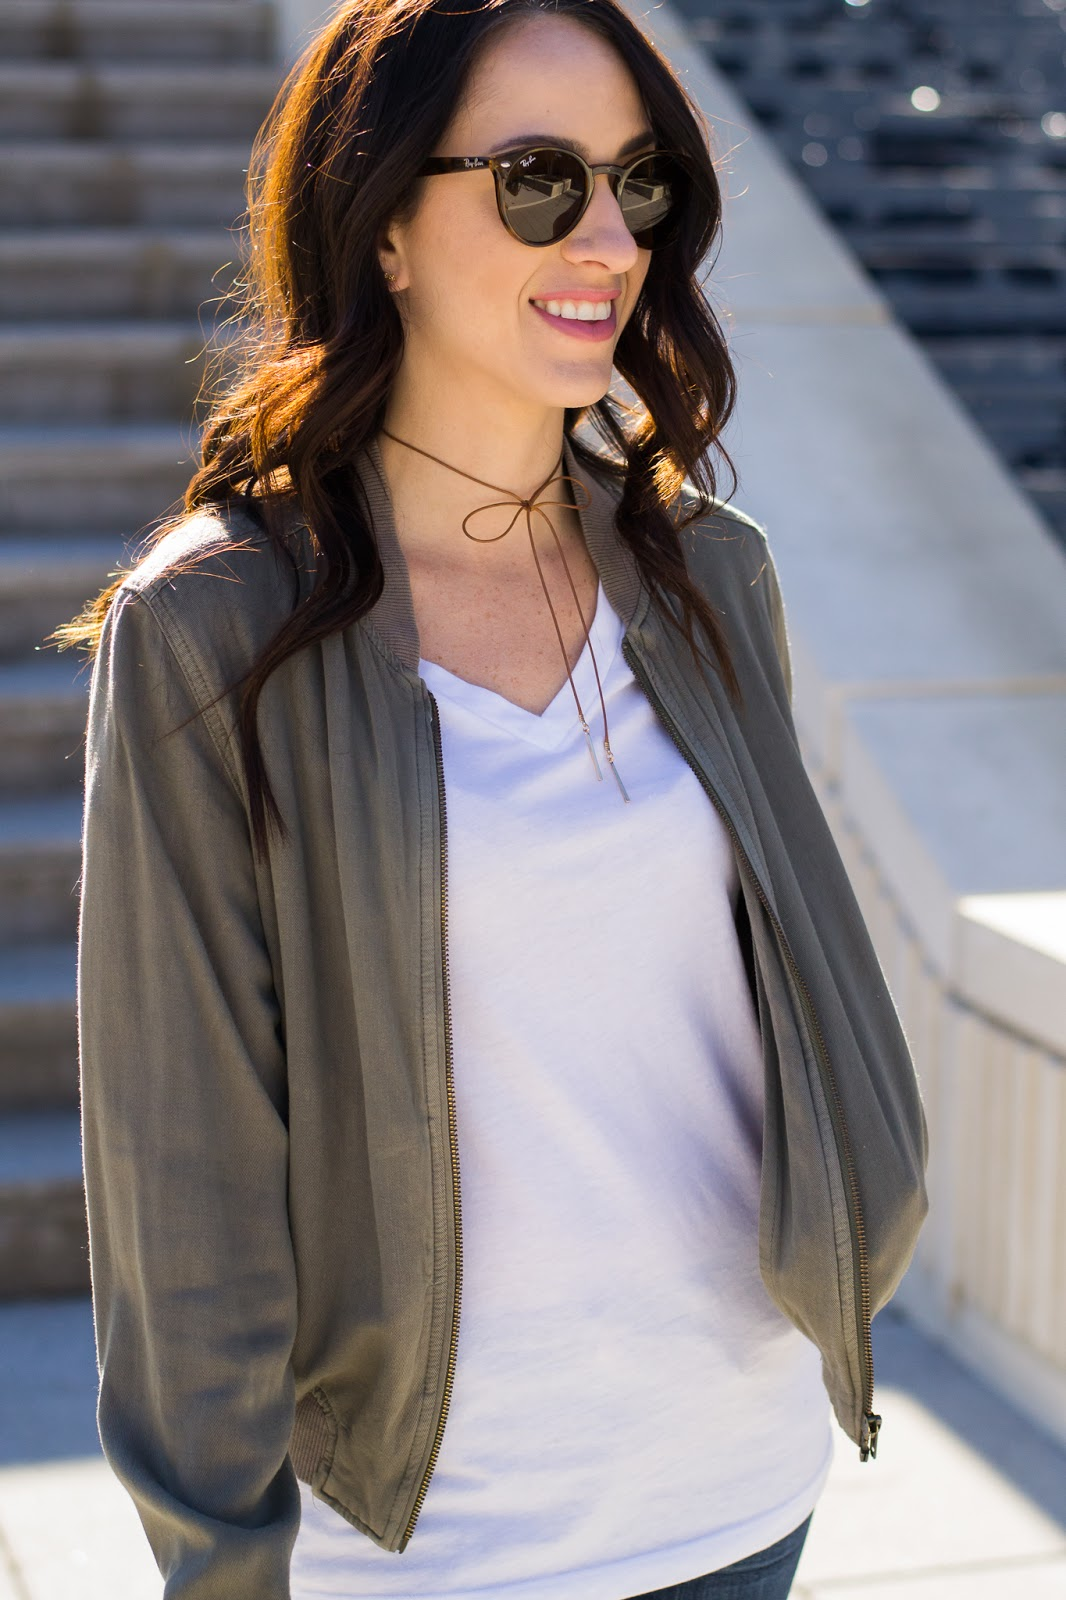 Dressing up a white tee with a bomber jacket and bow choker necklace